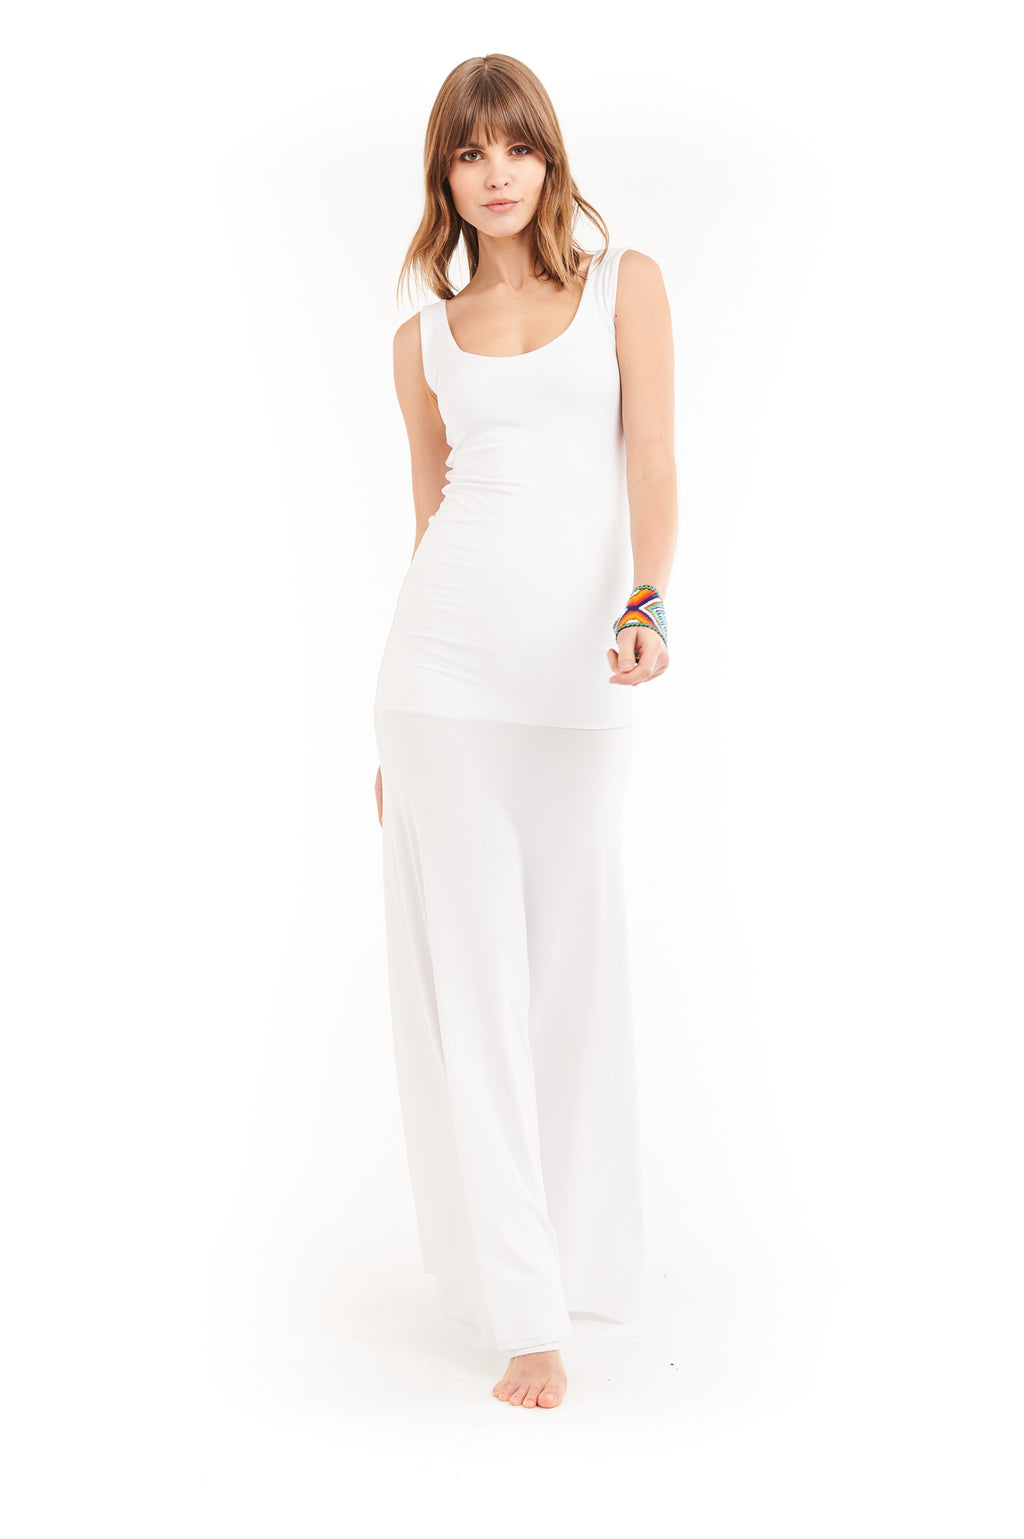 Bamboo Flamenco Dress White - MUDRA